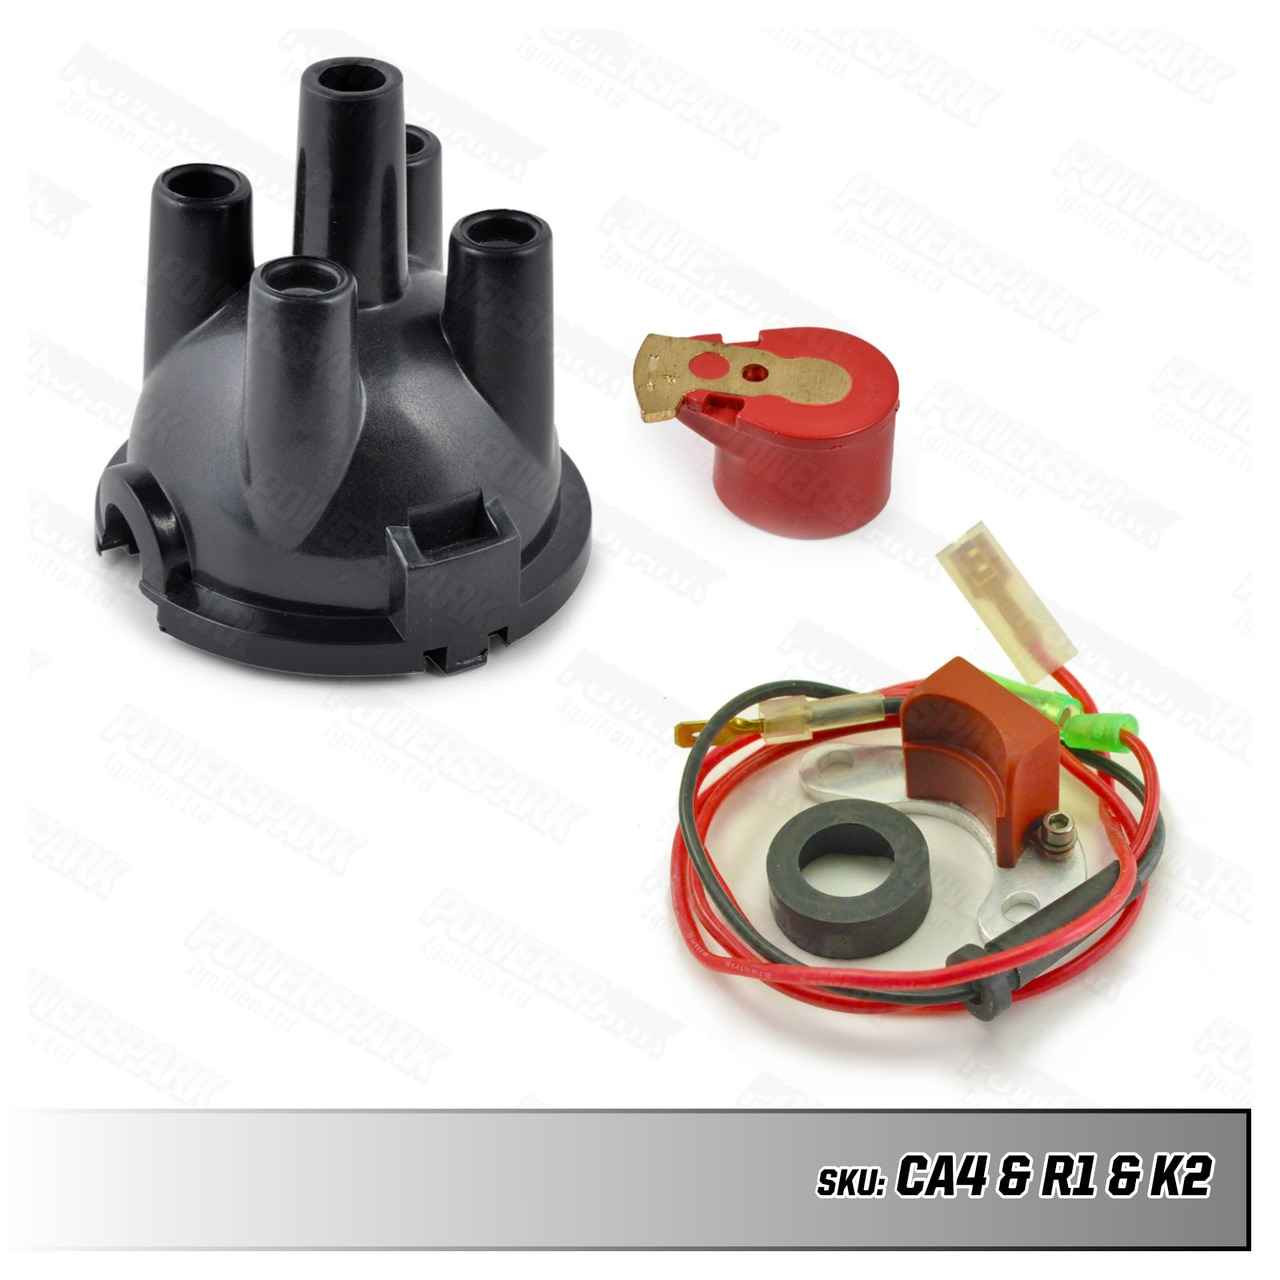 Lucas Lucas 23D and 25D Electronic Ignition Distributor Upgrade Kit